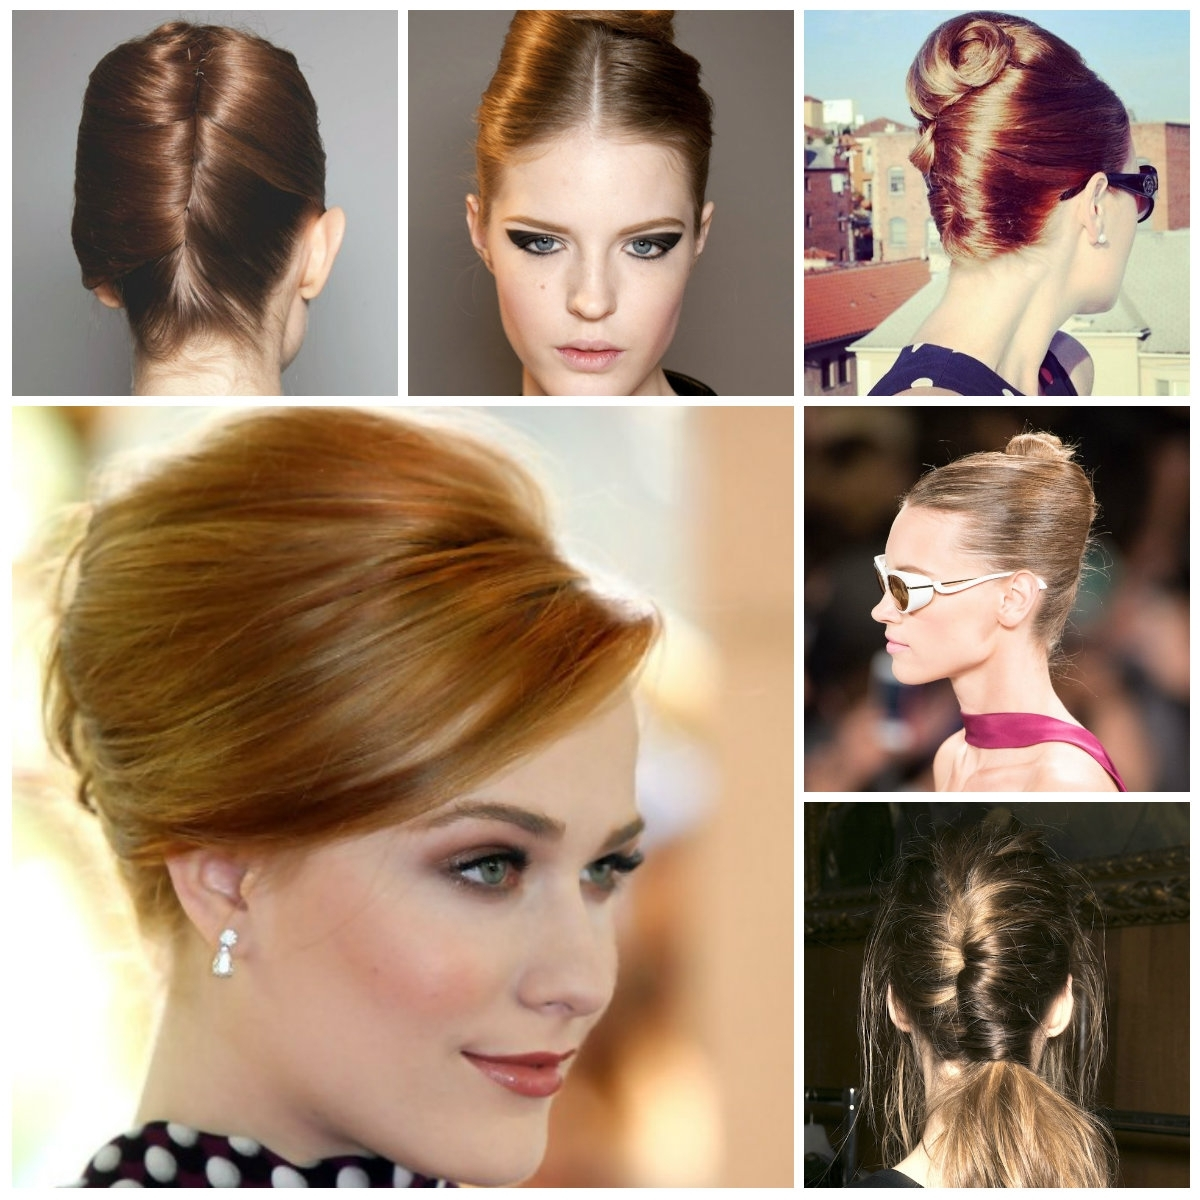 2017 Trendy French Twist Hairstyles | New Haircuts To Try For 2018 Pertaining To French Twist Updo Hairstyles For Medium Hair (View 4 of 15)